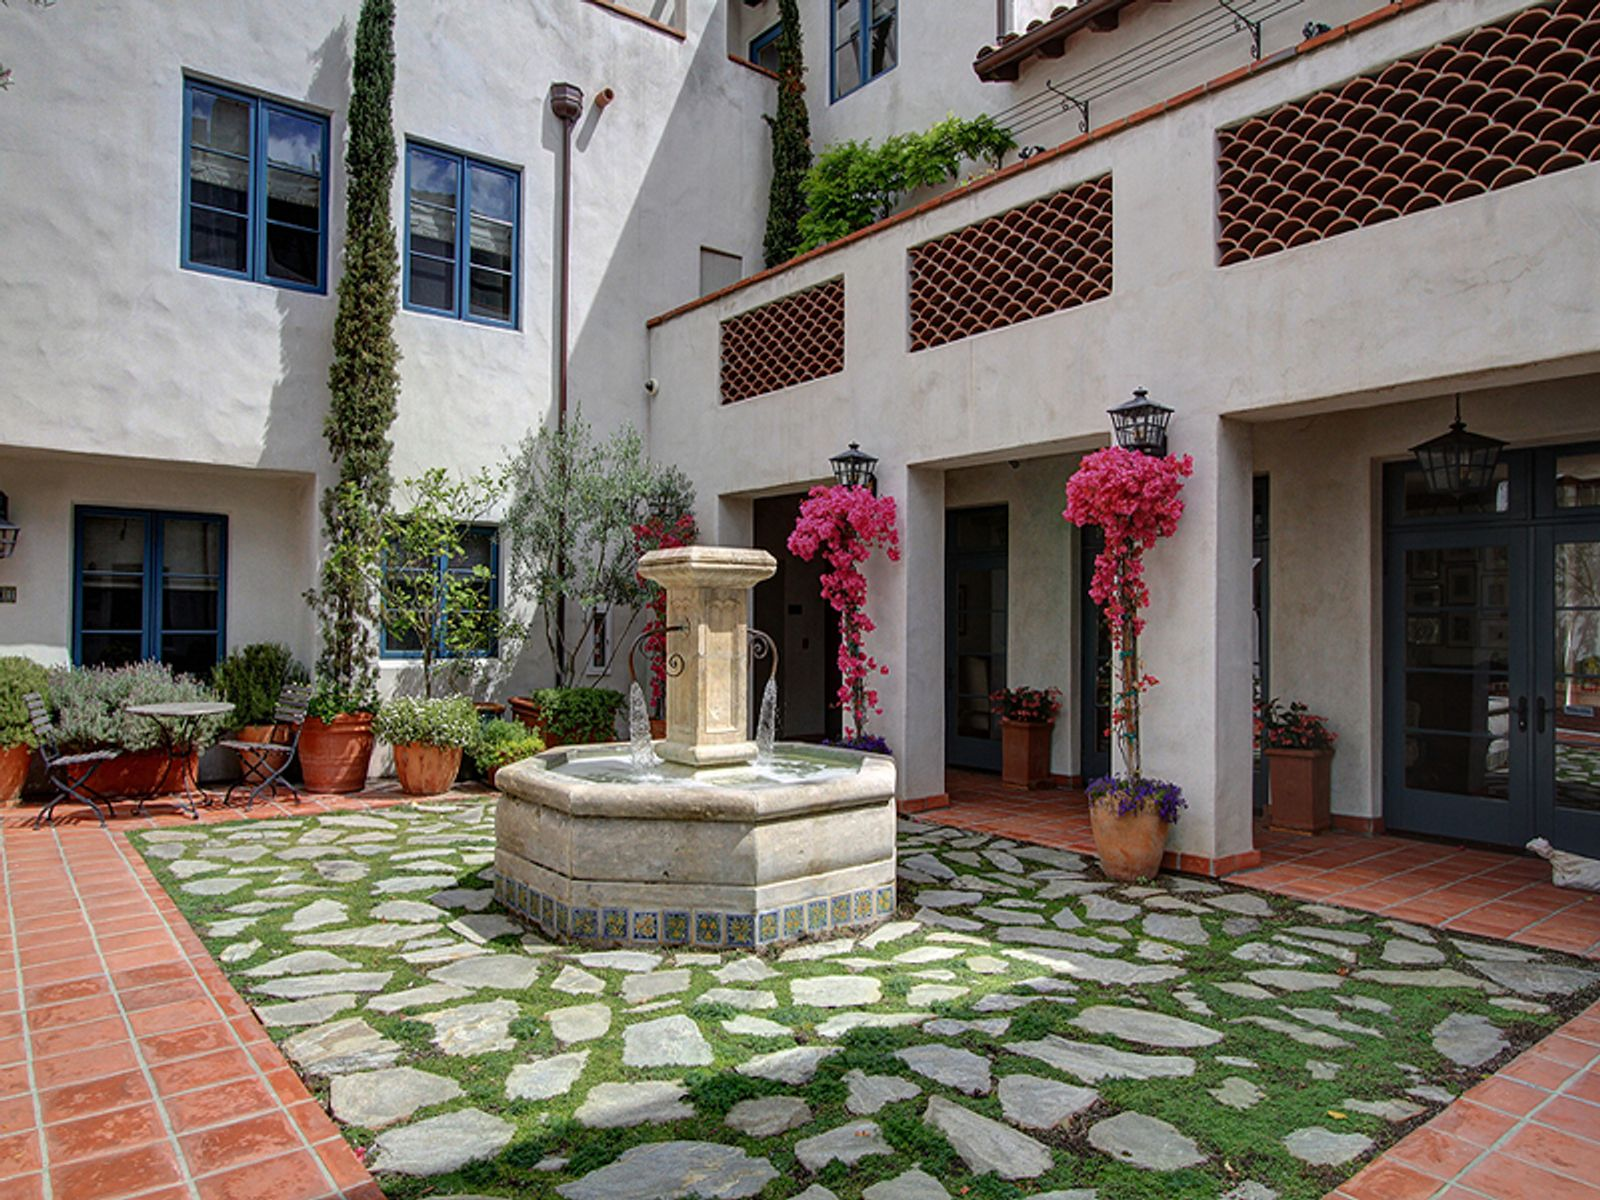 City Pied-A-Terre, Pasadena CA Condominium - Pasadena Real Estate